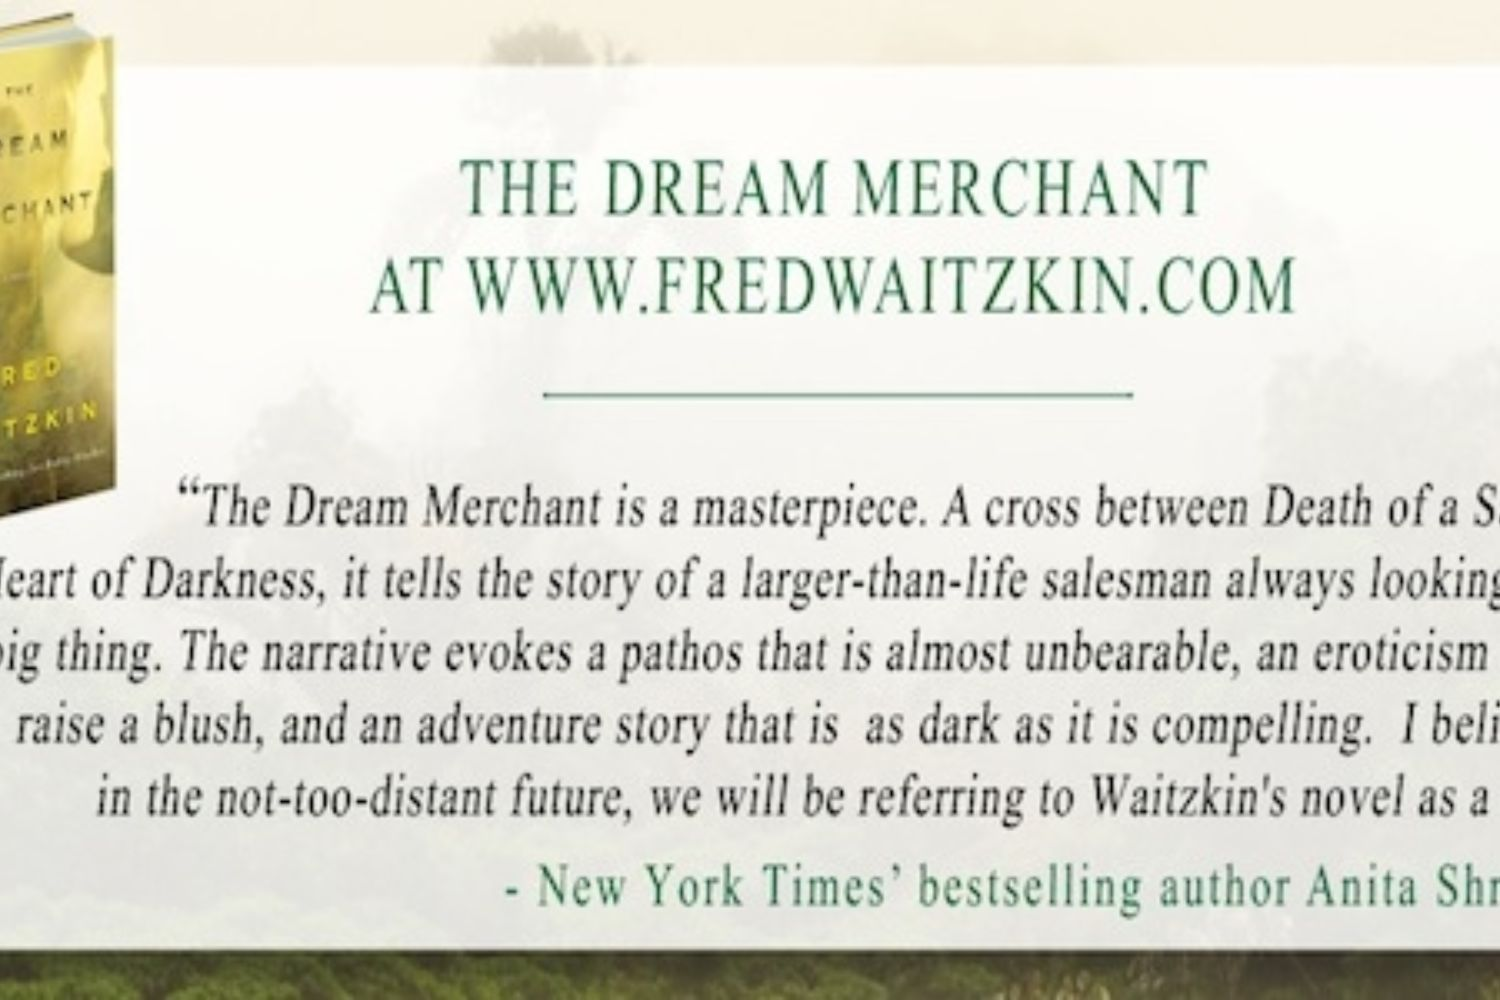 From Chess to Dreams: Interview on the Creative Writing Process with Fred Waitzkin